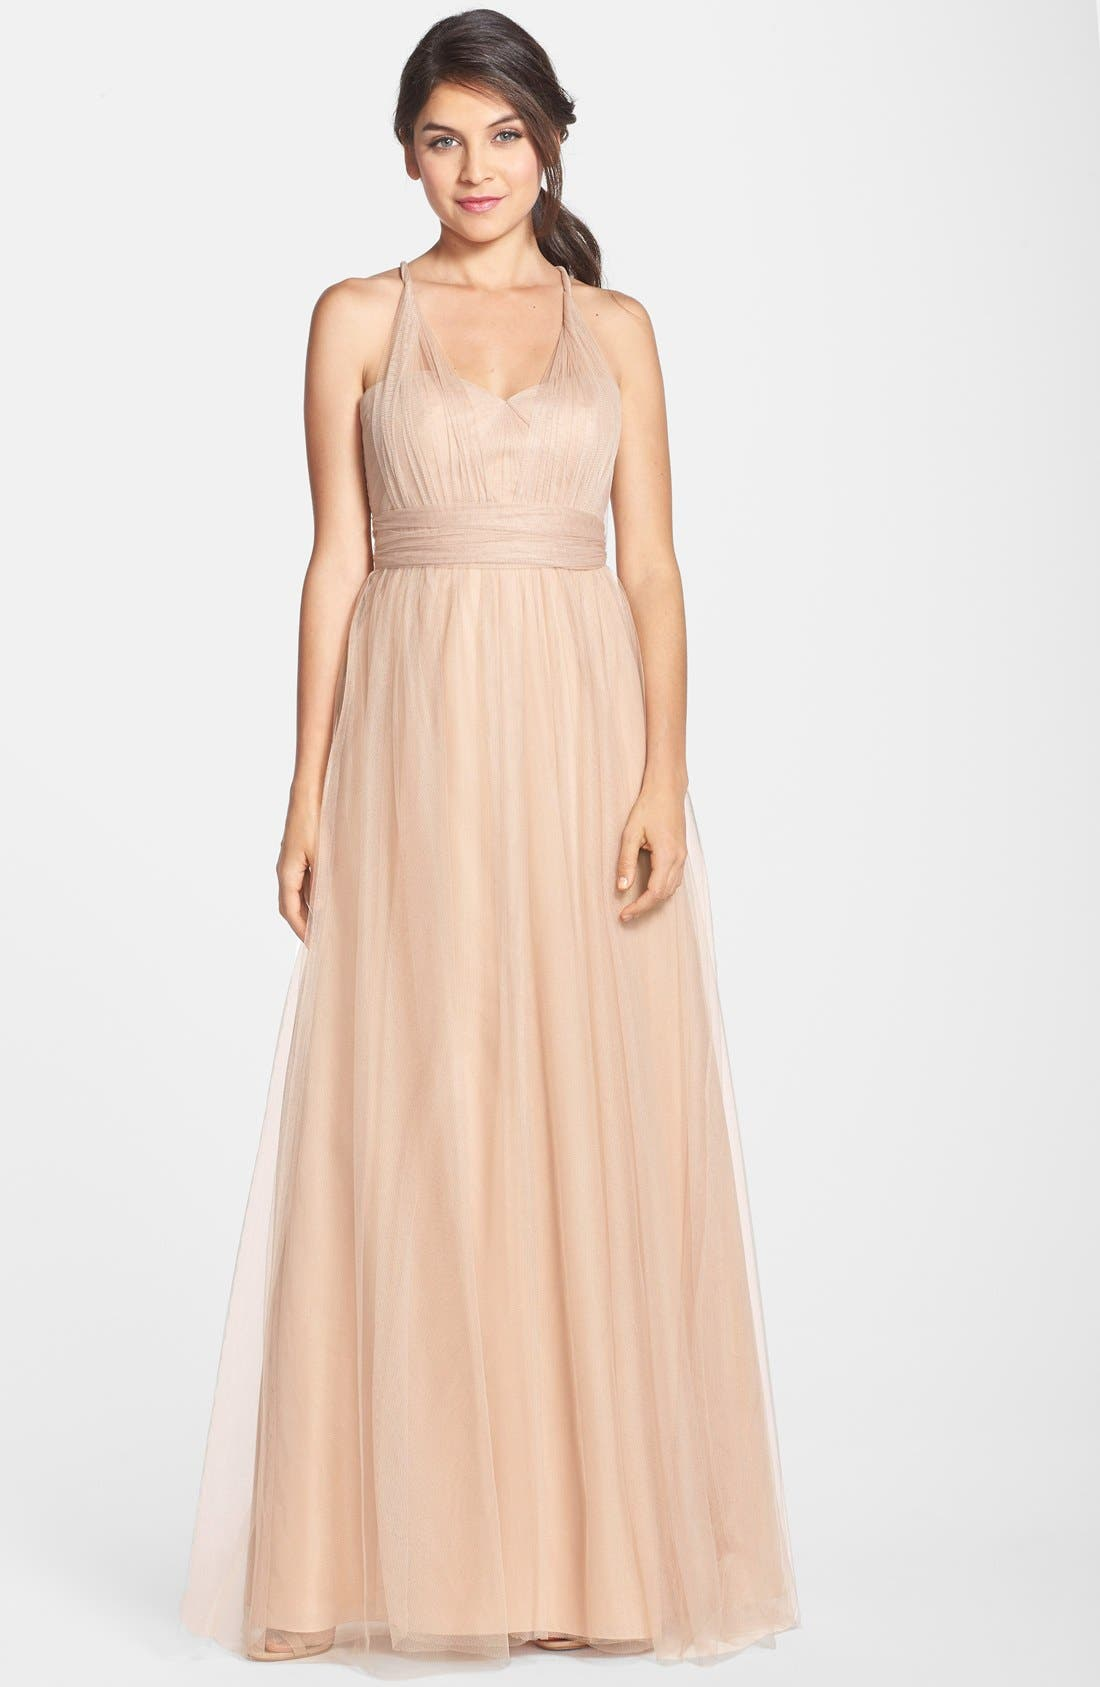 Annabelle Convertible Tulle Column Dress,                             Alternate thumbnail 78, color,